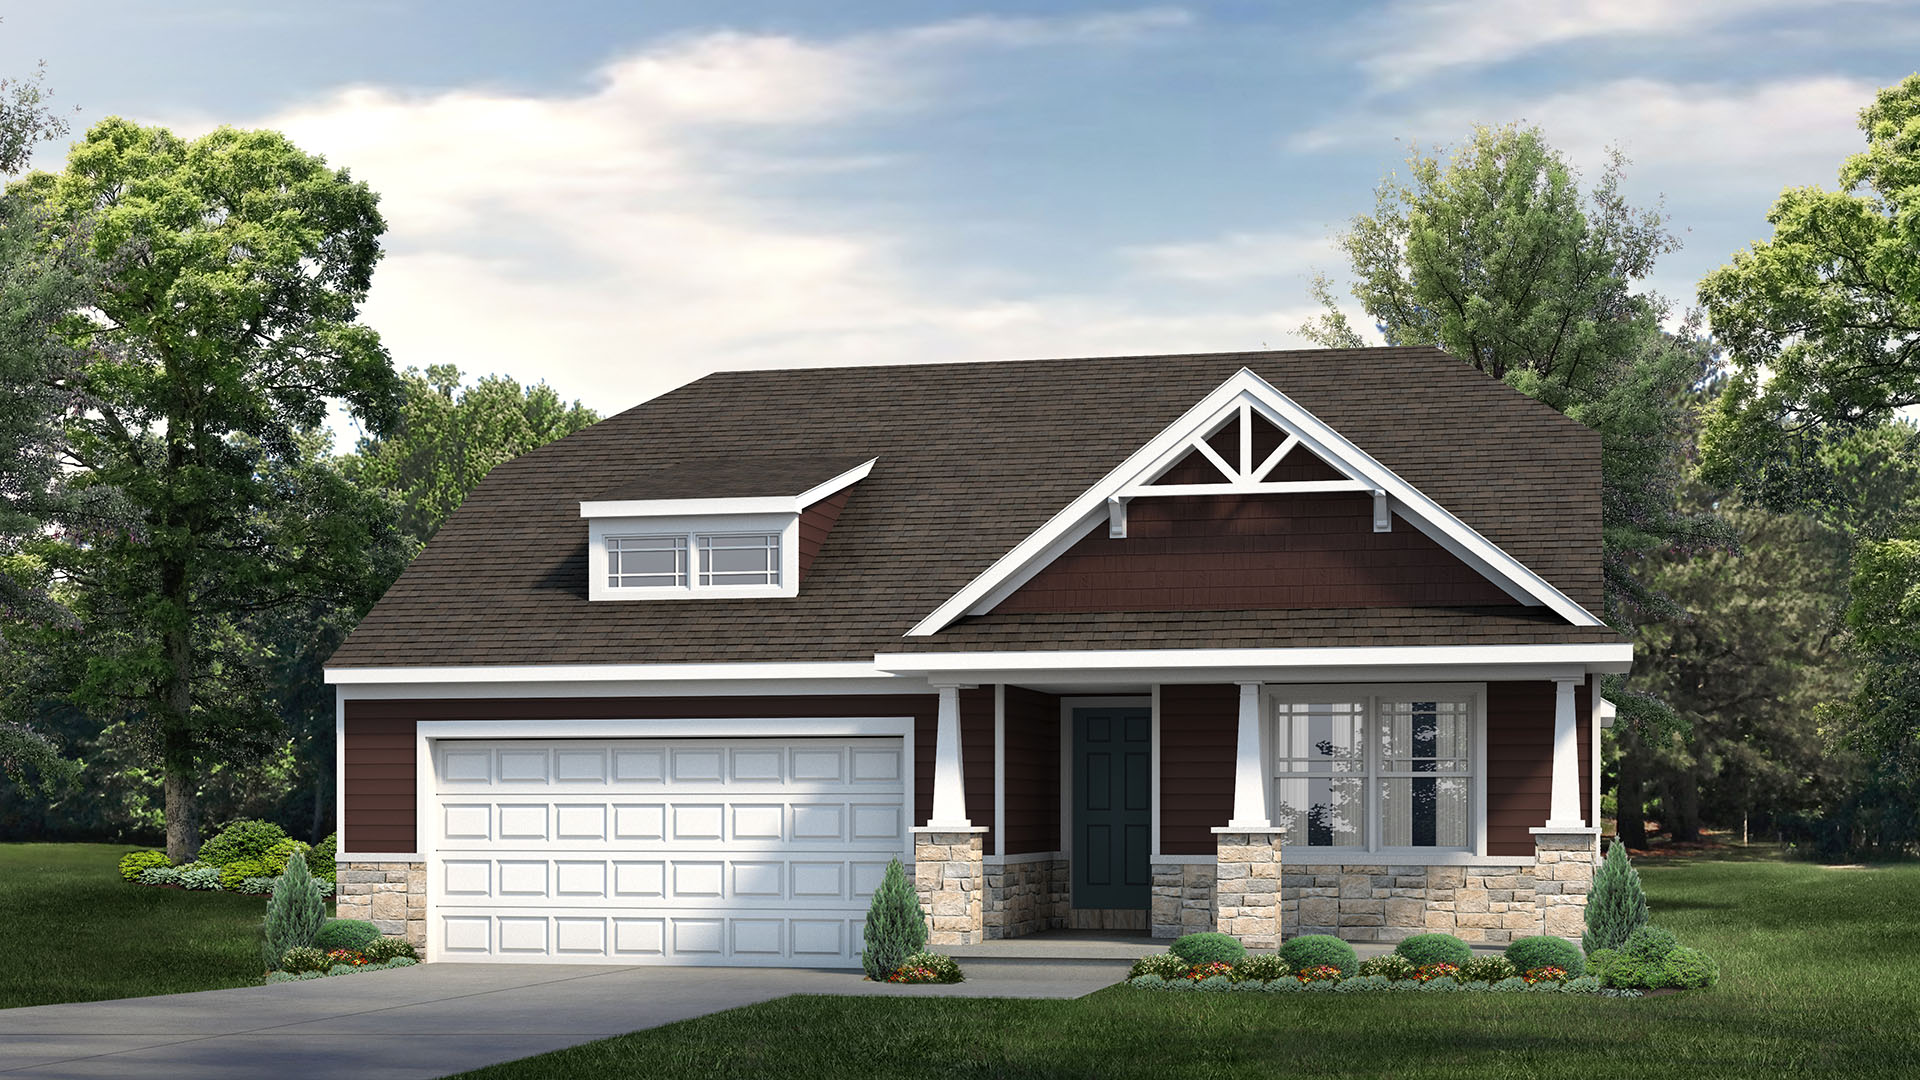 Featured Floor Plan: Rockford